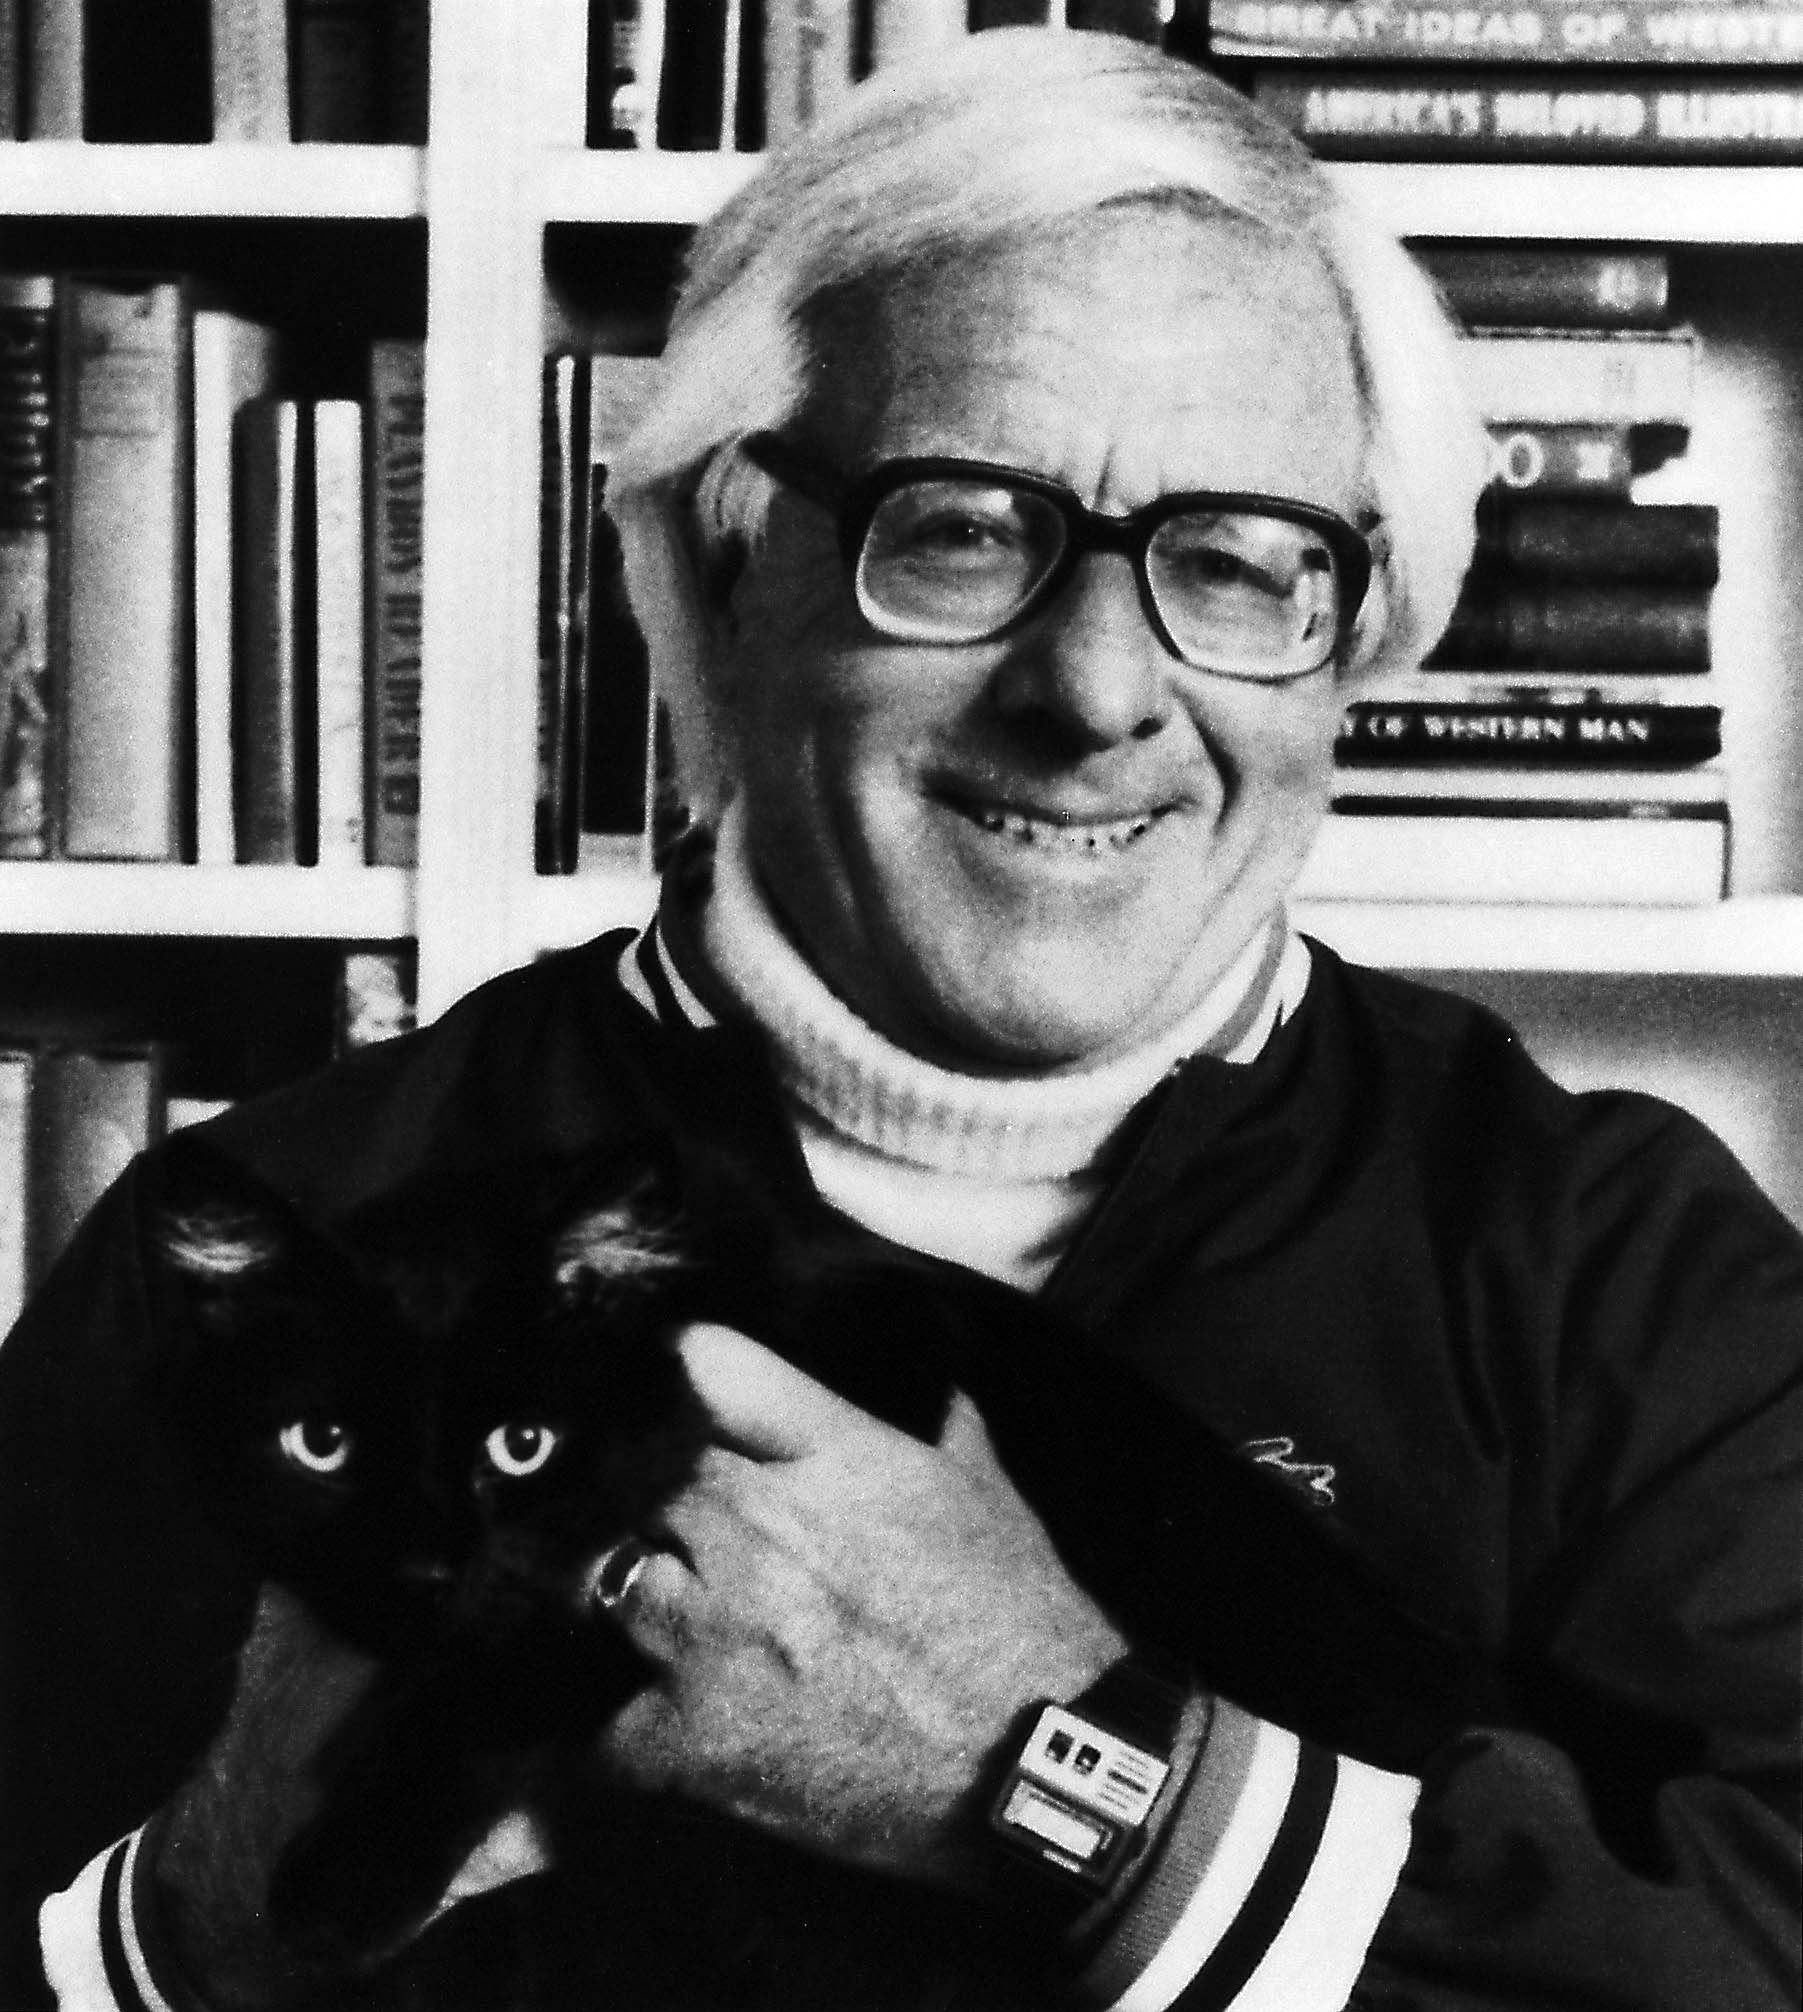 Ray Douglas Bradbury (born August 22, 1920) is an American fantasy, horror, science fiction, and mystery writer. Best known for his dystopian novel Fahrenheit 451 (1953) and for the science fiction stories gathered together as The Martian Chronicles (1950) and The Illustrated Man (1951), Bradbury is one of the most celebrated among 20th and 21st century American writers of speculative fiction. Many of Bradbury's works have been adapted into television shows or films.